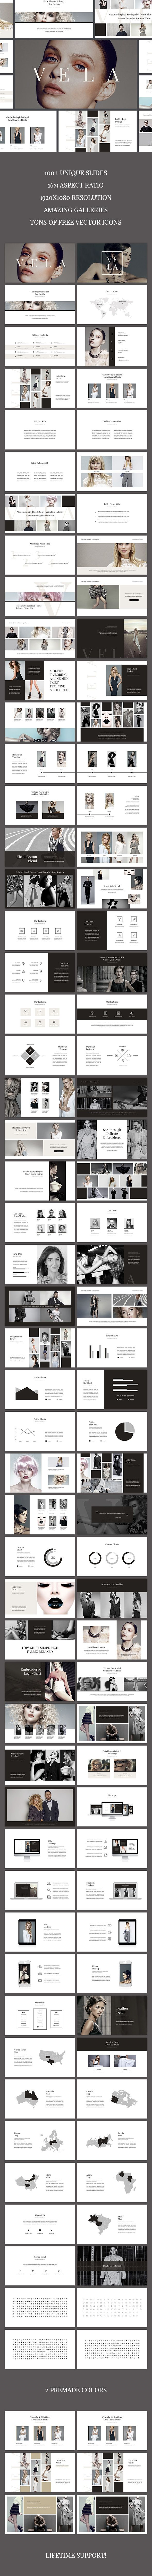 Vela Keynote Template  #photo album #simple • Download ➝ https://graphicriver.net/item/vela-keynote-template/18118740?ref=pxcr